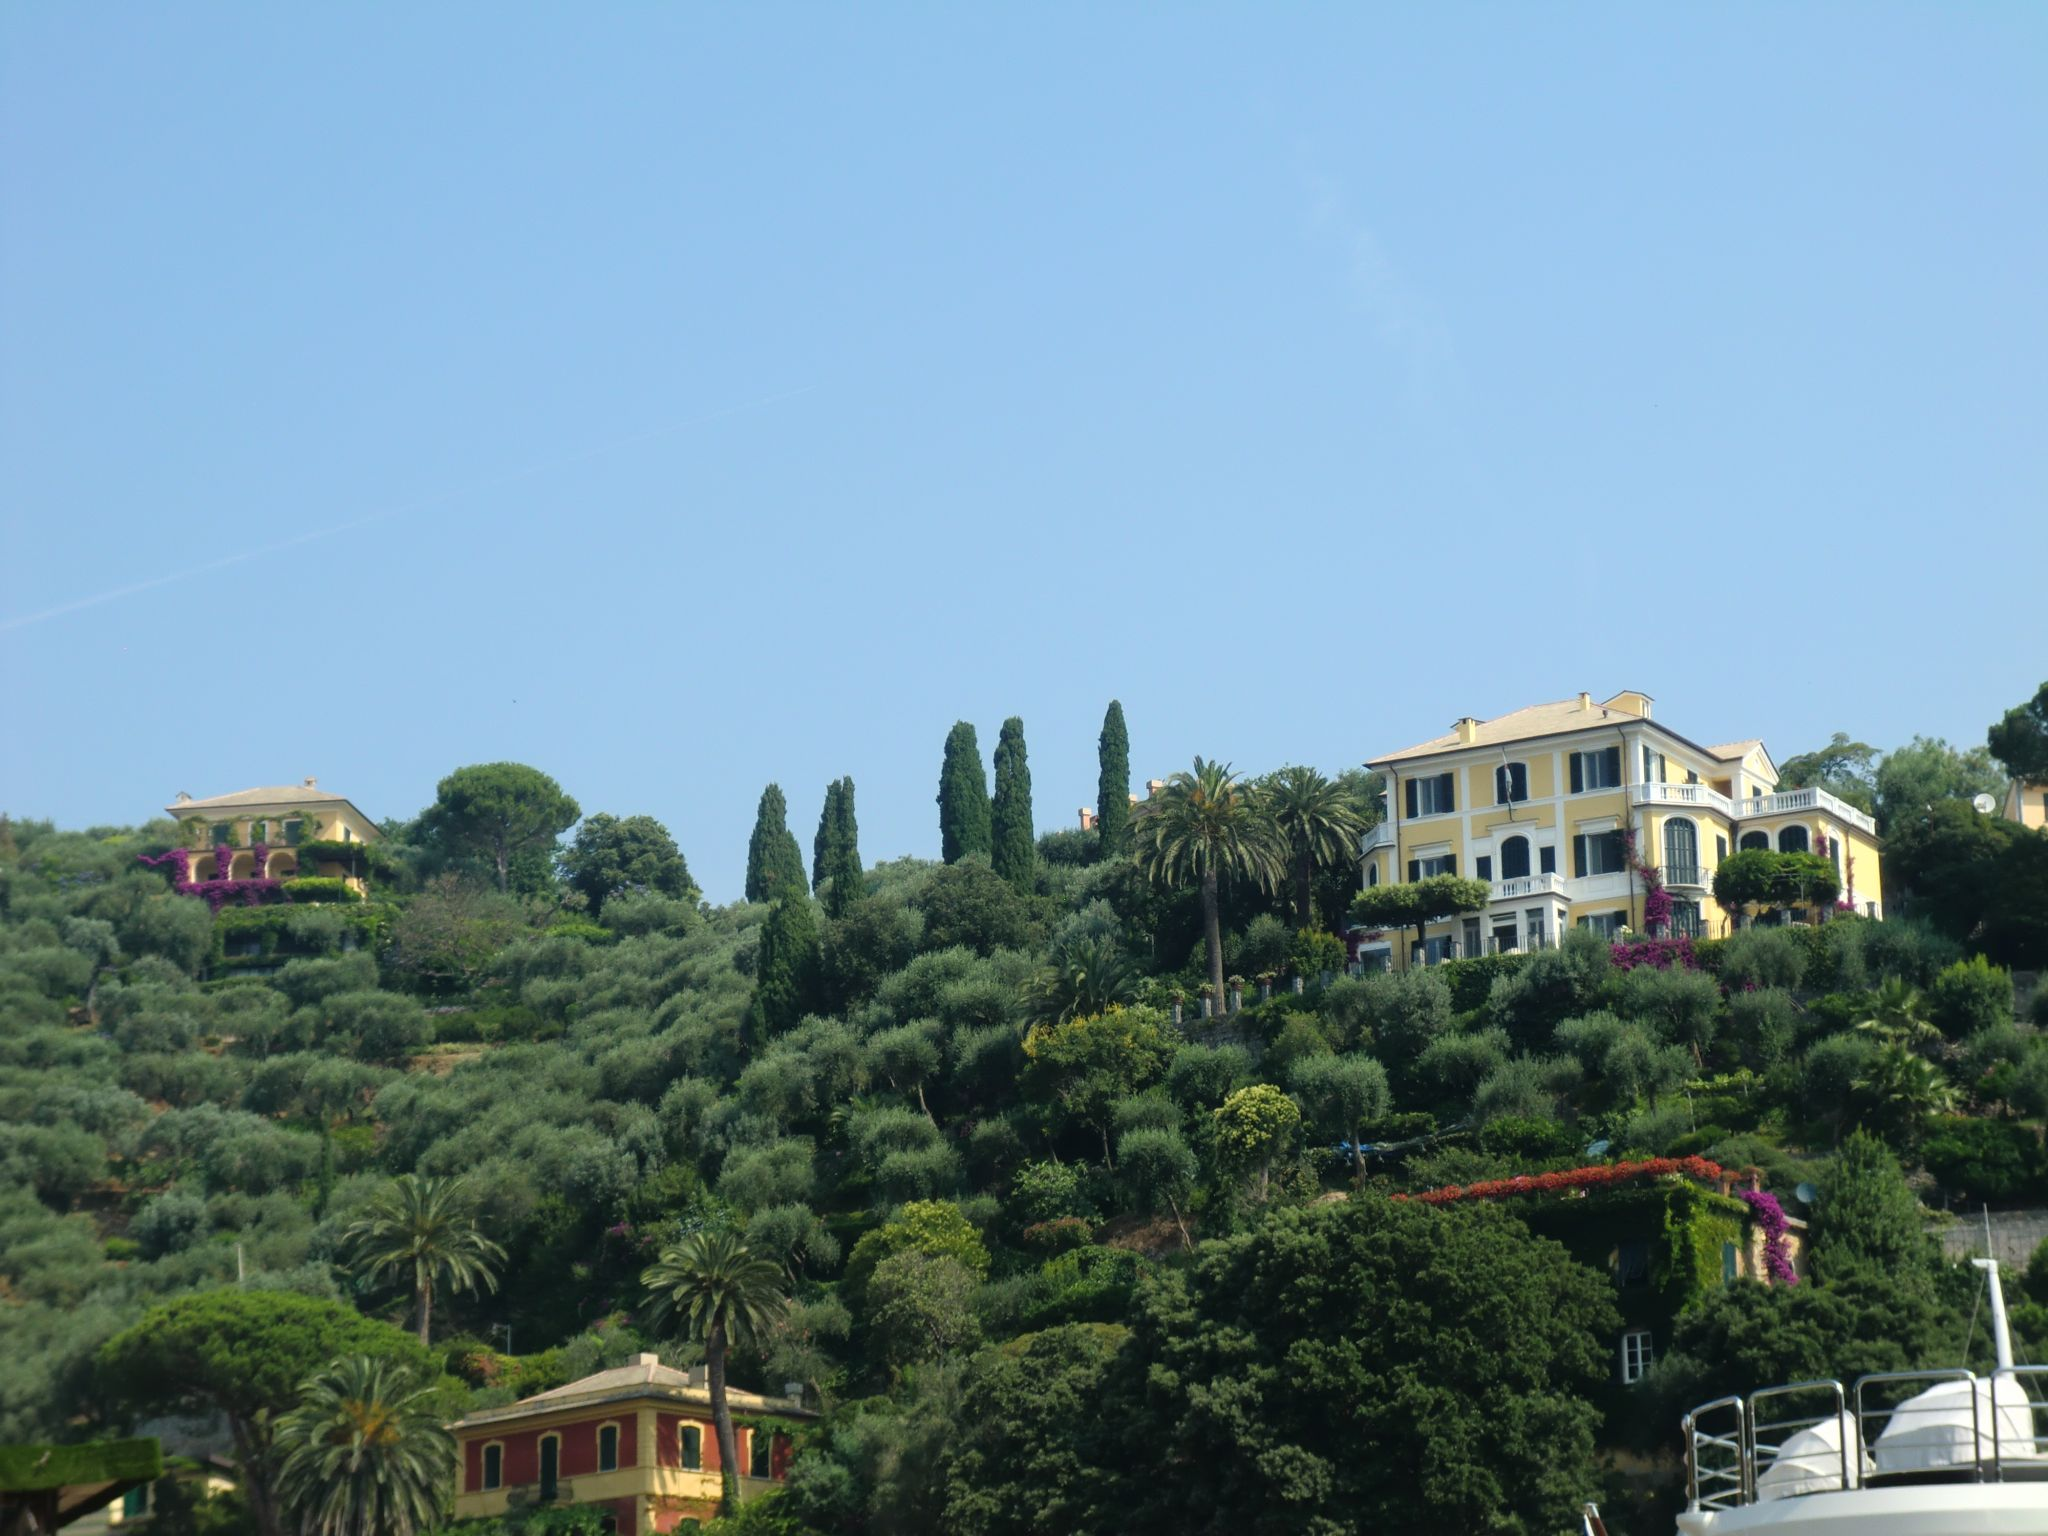 Portofino 12 - Portofino: a small pearl on the sea